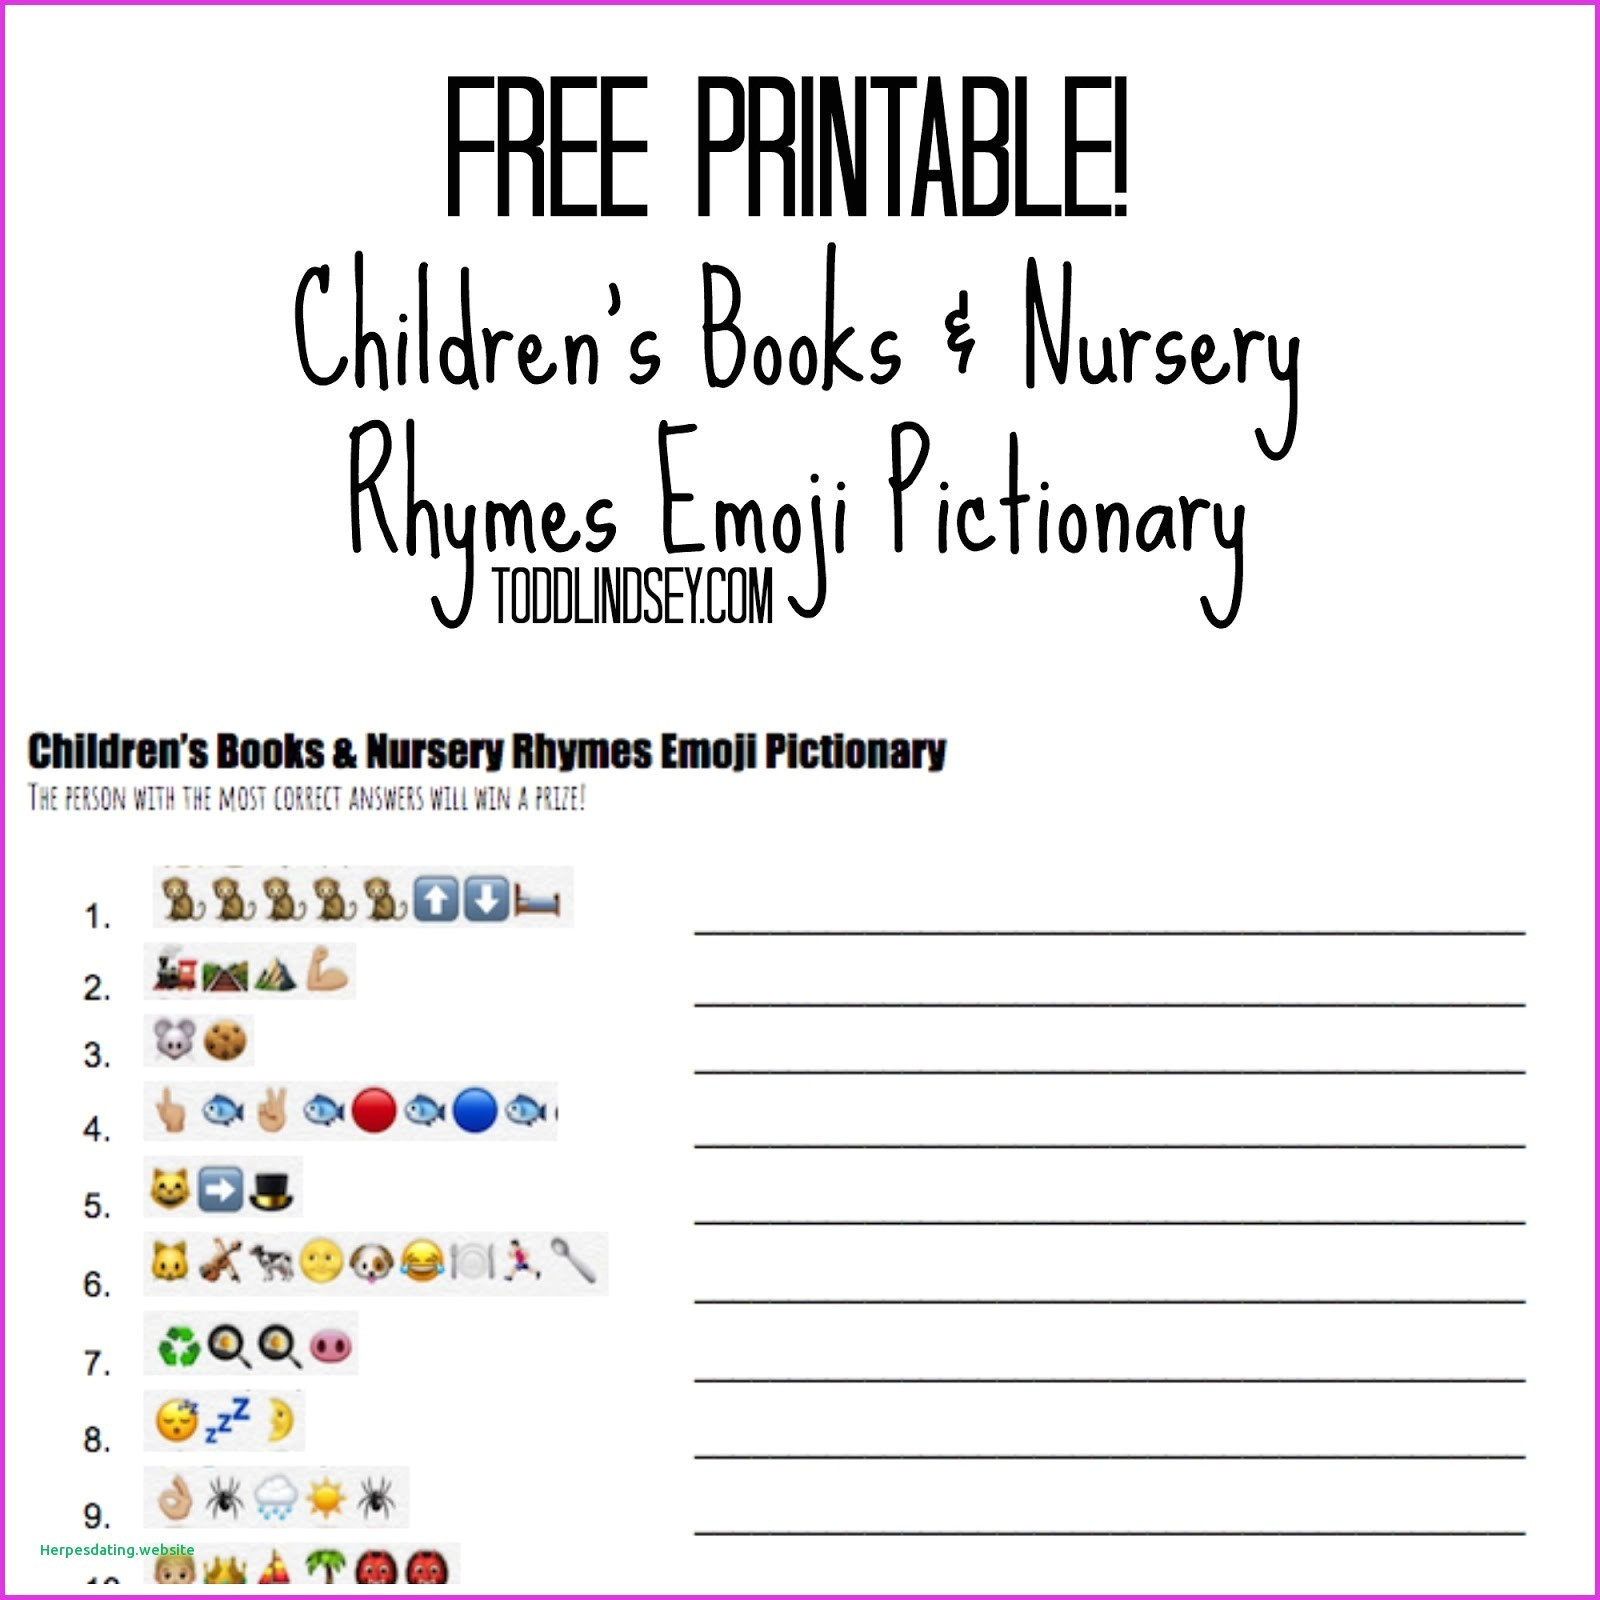 New Free Printable Children S Church Curriculum Fresh 36 New - Free Printable Children's Church Curriculum